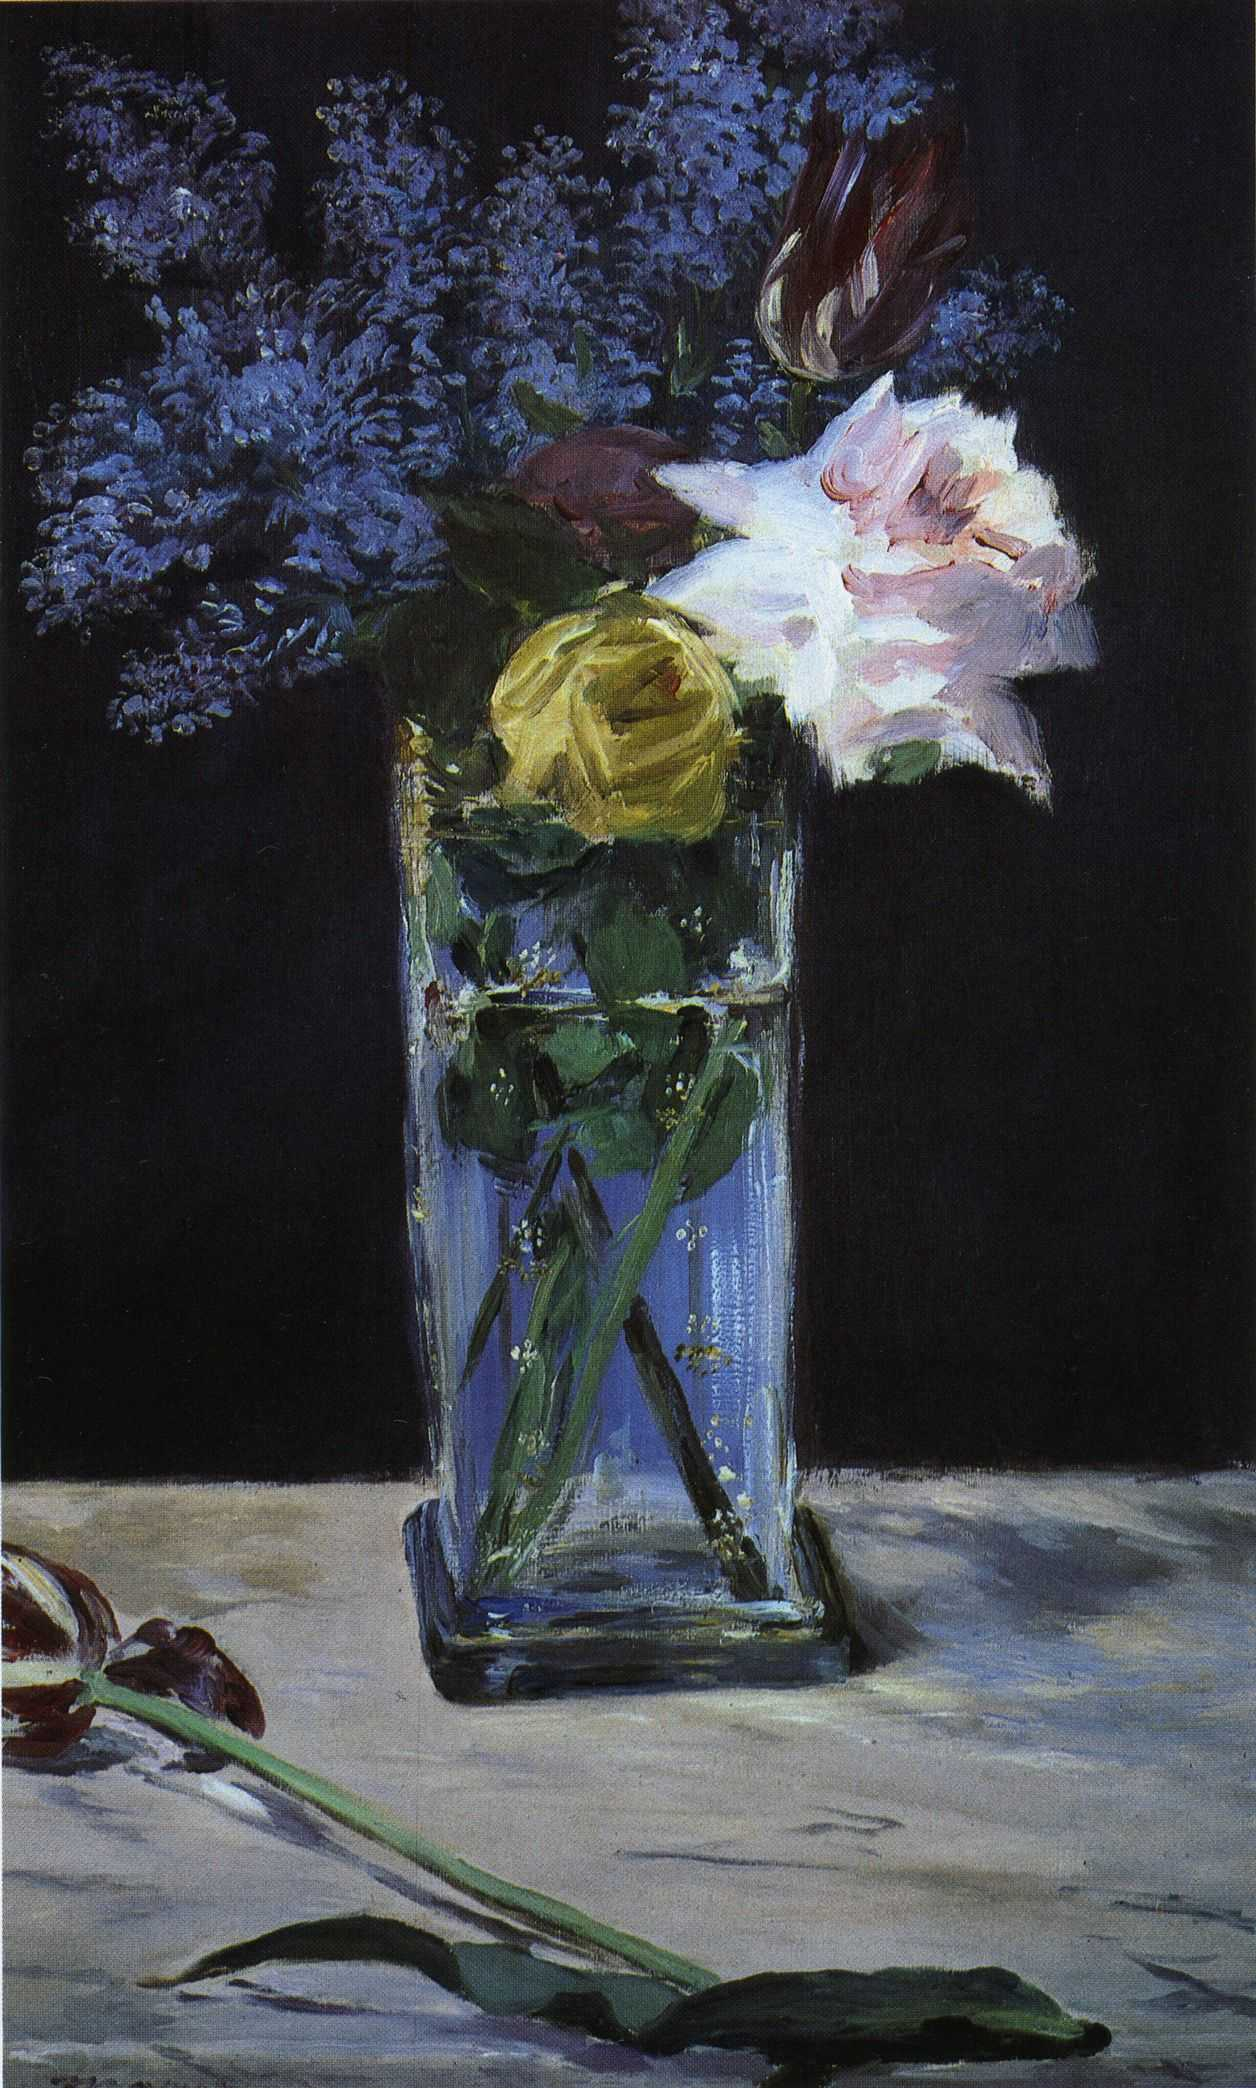 flower vase painting on canvas with File  C3 89douard Ma    Roses  Tulips Et Lilas Dans Un Vase De Christal on Blazing White Daisies In Persimmon Vase Elaine Plesser moreover Pic3819 004 together with Art Sg   images Famous 20Paintings famous 20Landscape 20flower 20VAN 20GOGH 201 moreover File  C3 89douard Ma    Roses  Tulips et Lilas dans un vase de christal besides Watch.